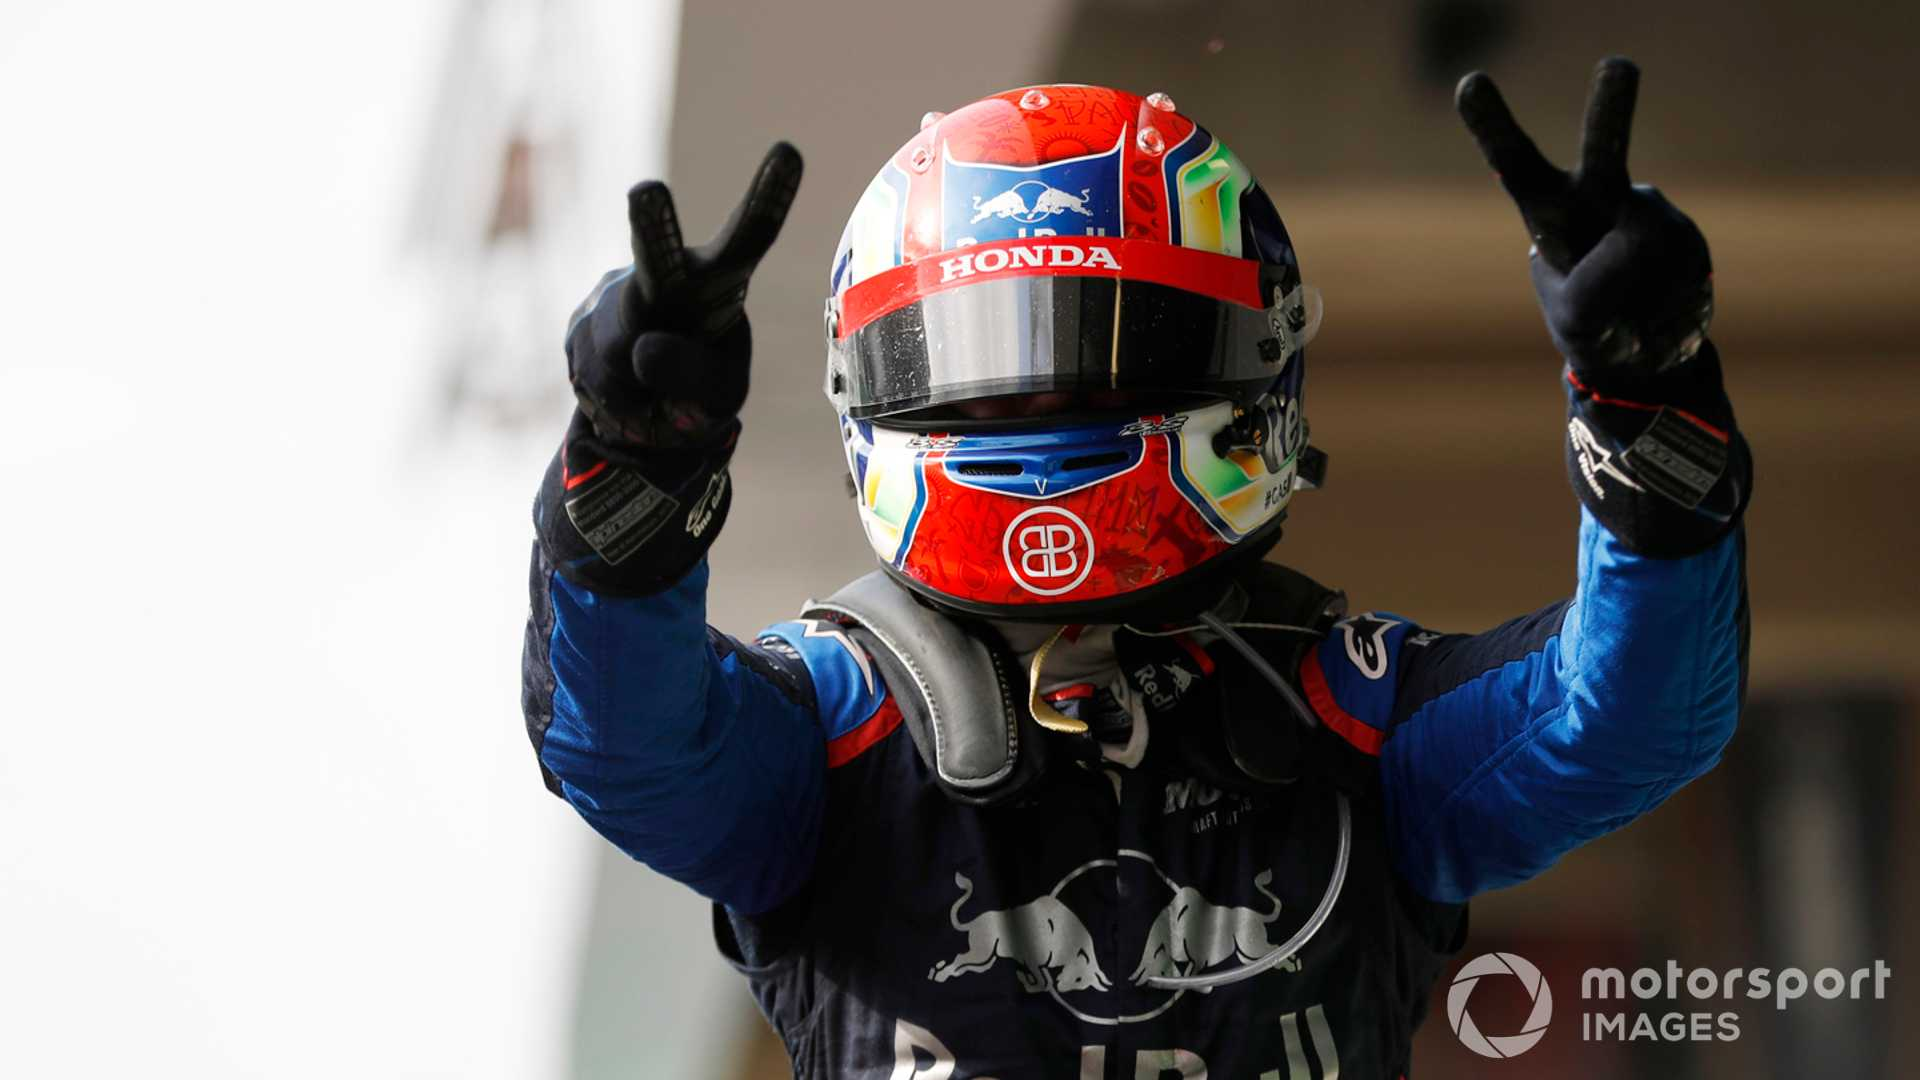 Gasly: 'Insane' podium 'the best day of my life'